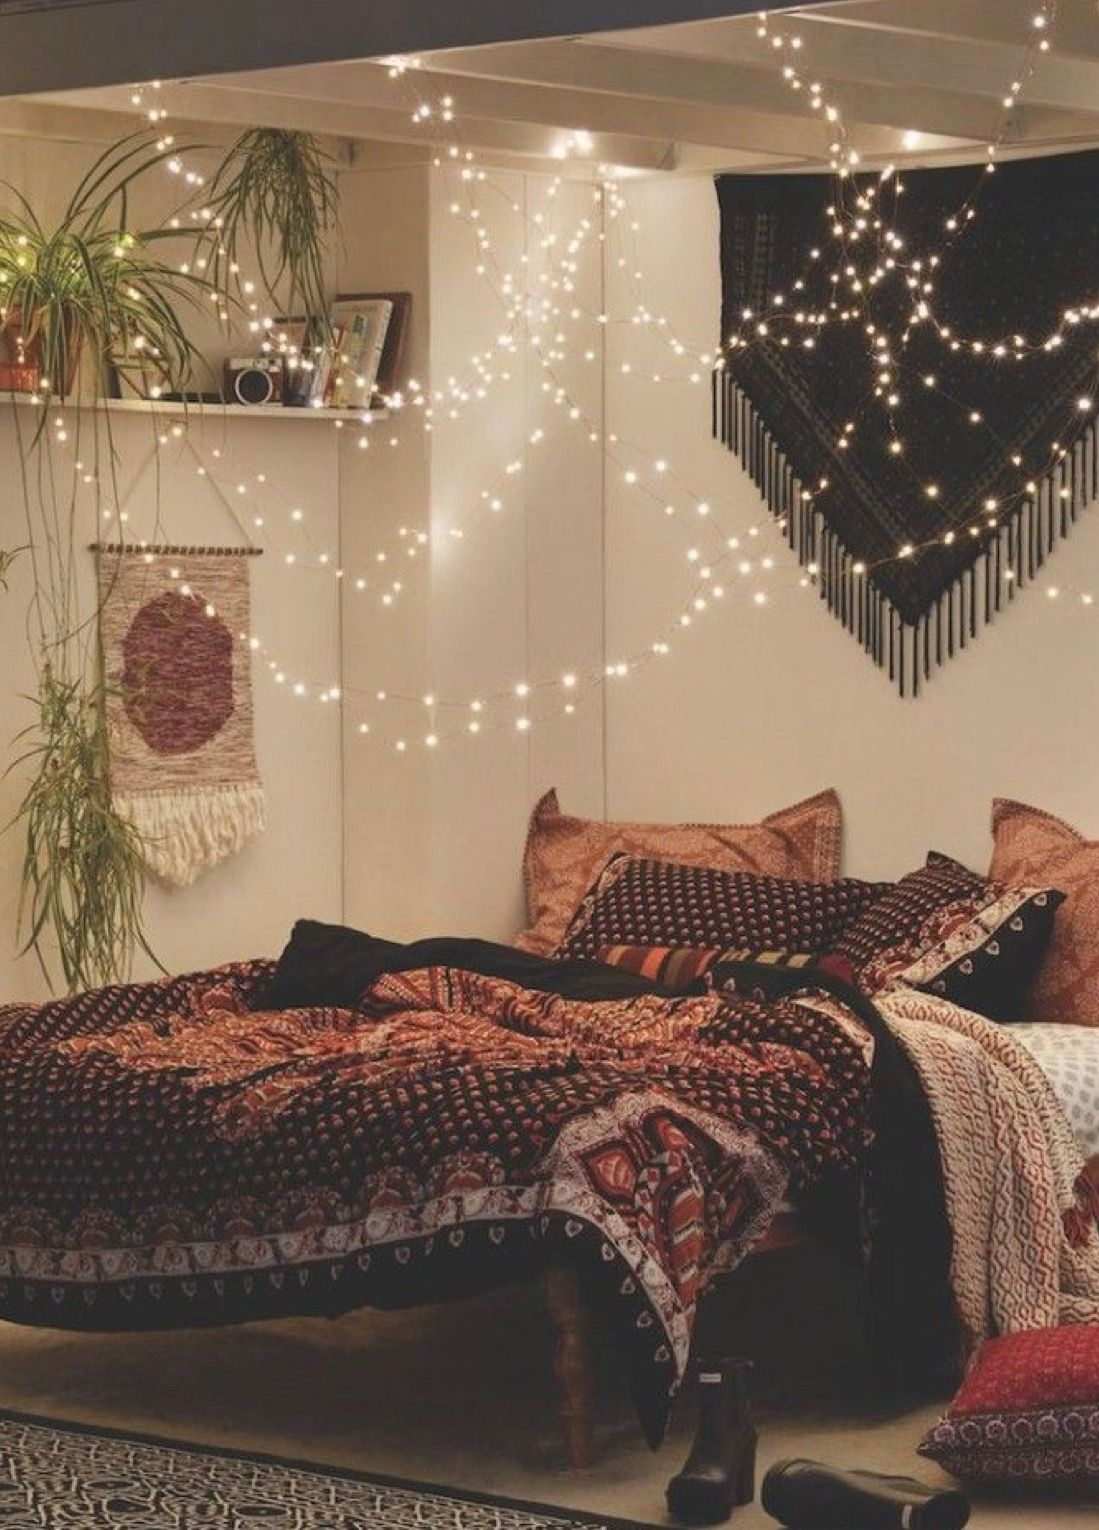 Over Bed Lights Pin By Amy G On Room Goals Pinterest Bedroom Room